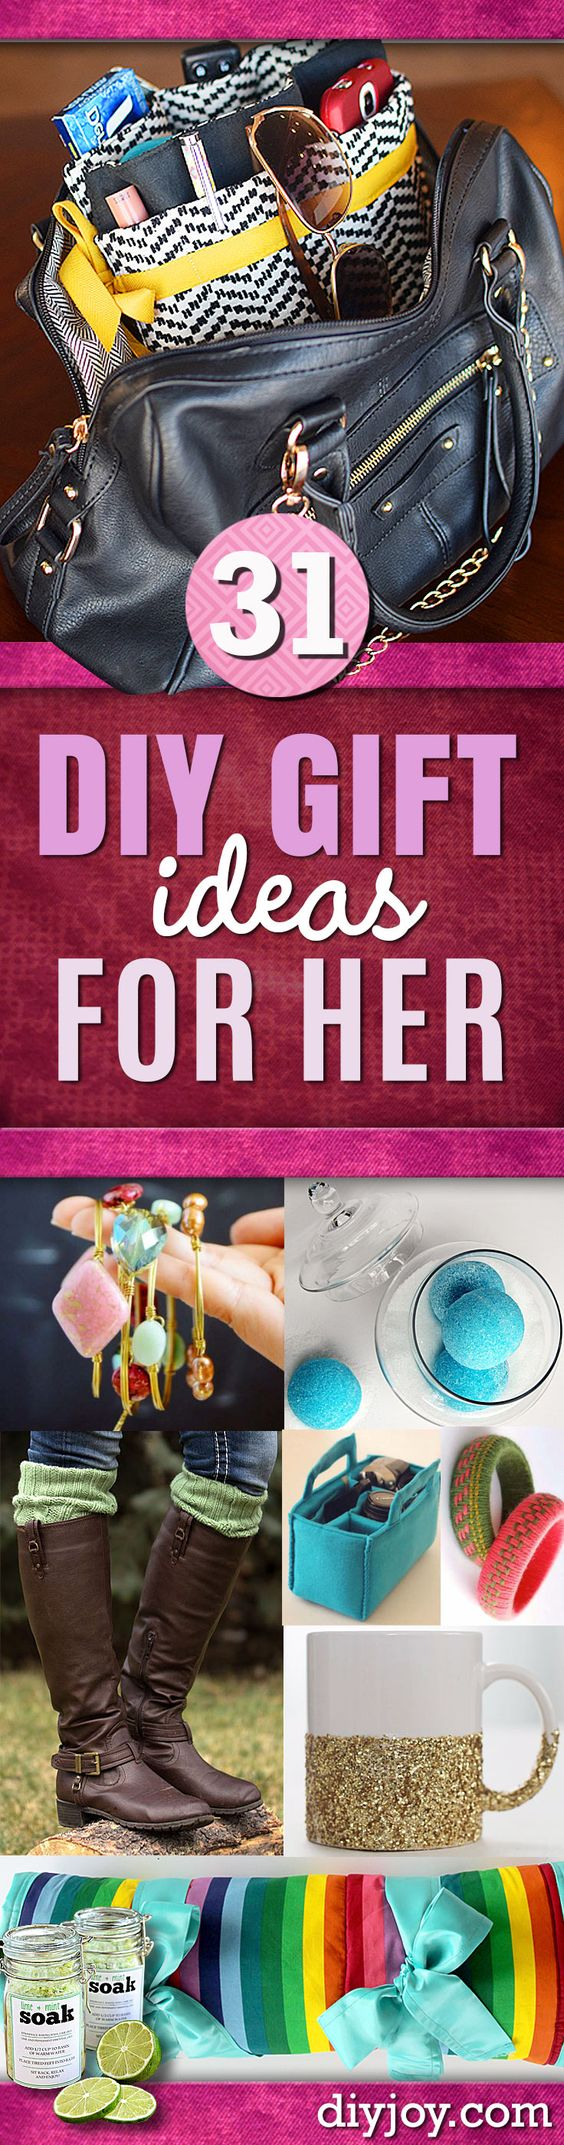 Super special diy gift ideas for her homemade Perfect christmas gifts for mom